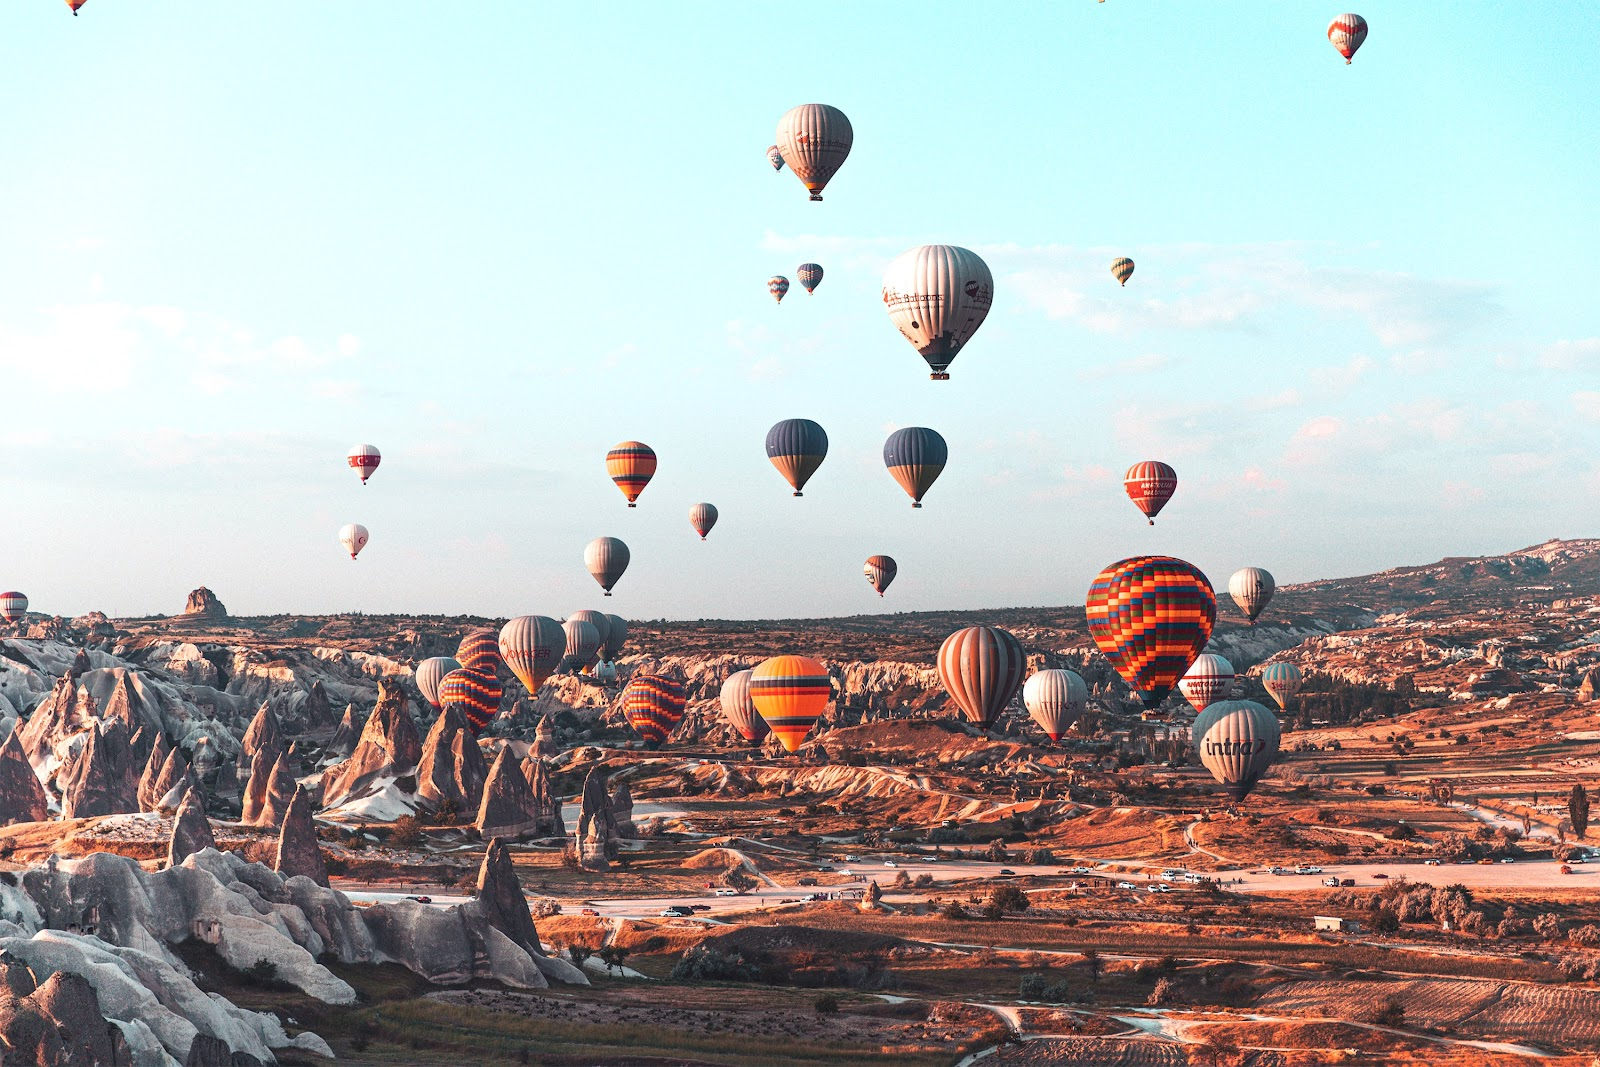 Hot air balloons rising over the mountains of Turkey